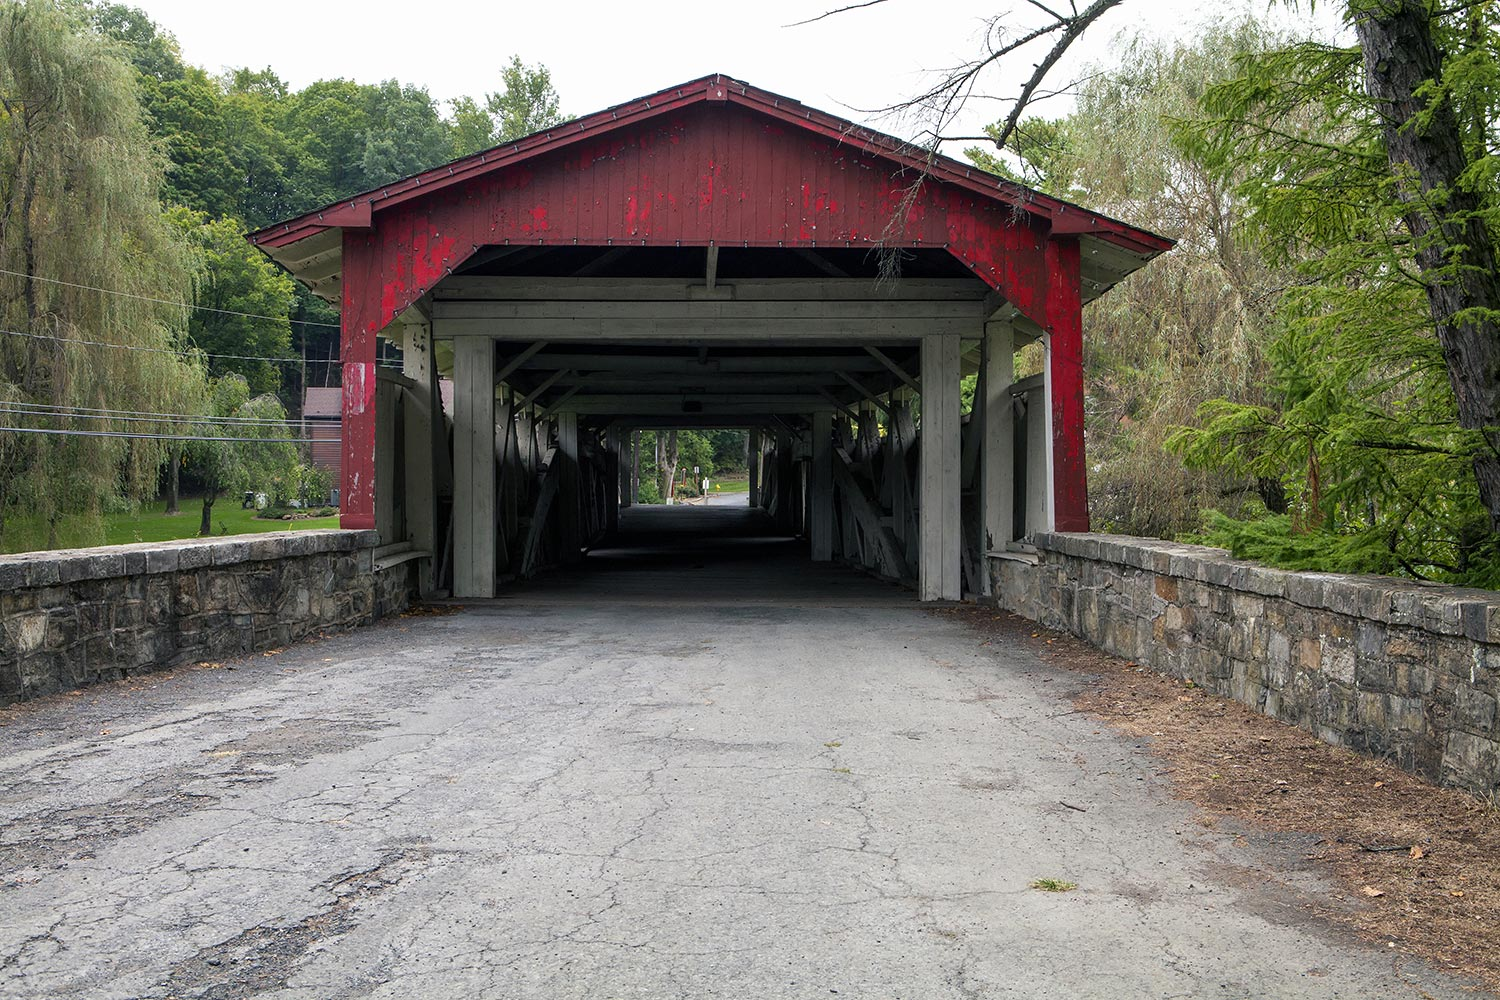 Red wooden covered bridge in Allentown